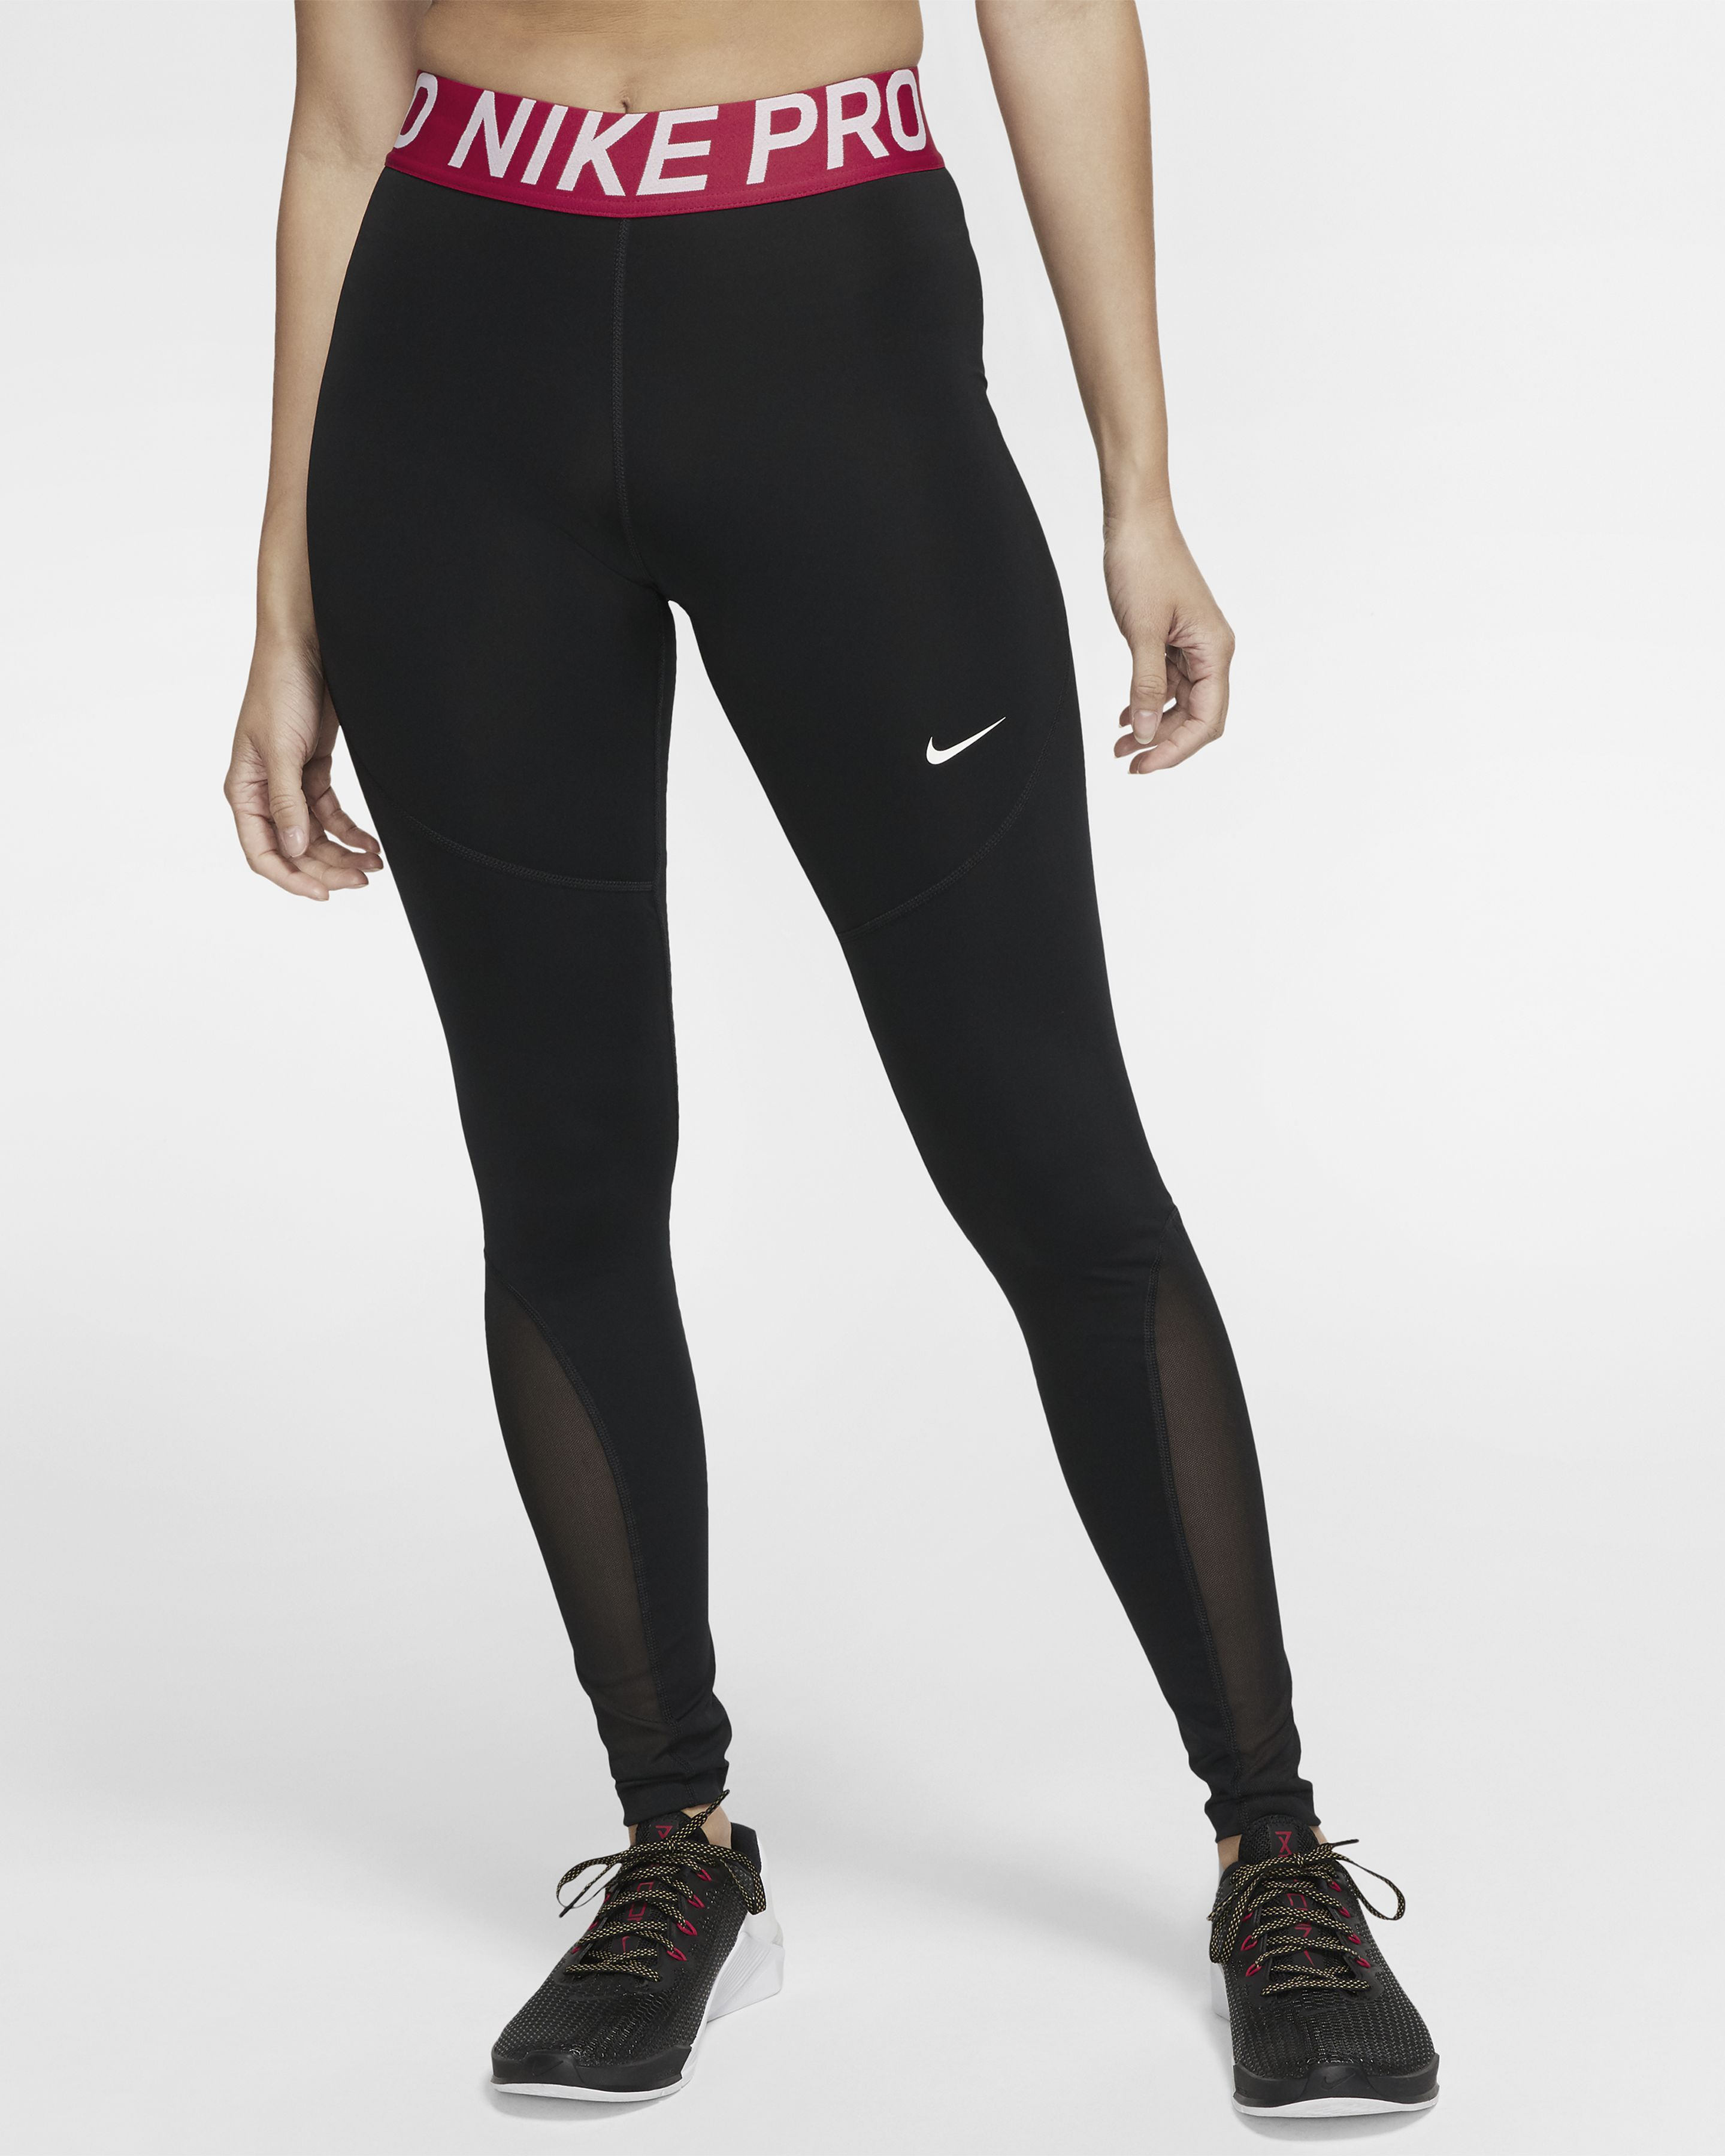 3 tick nike leggings